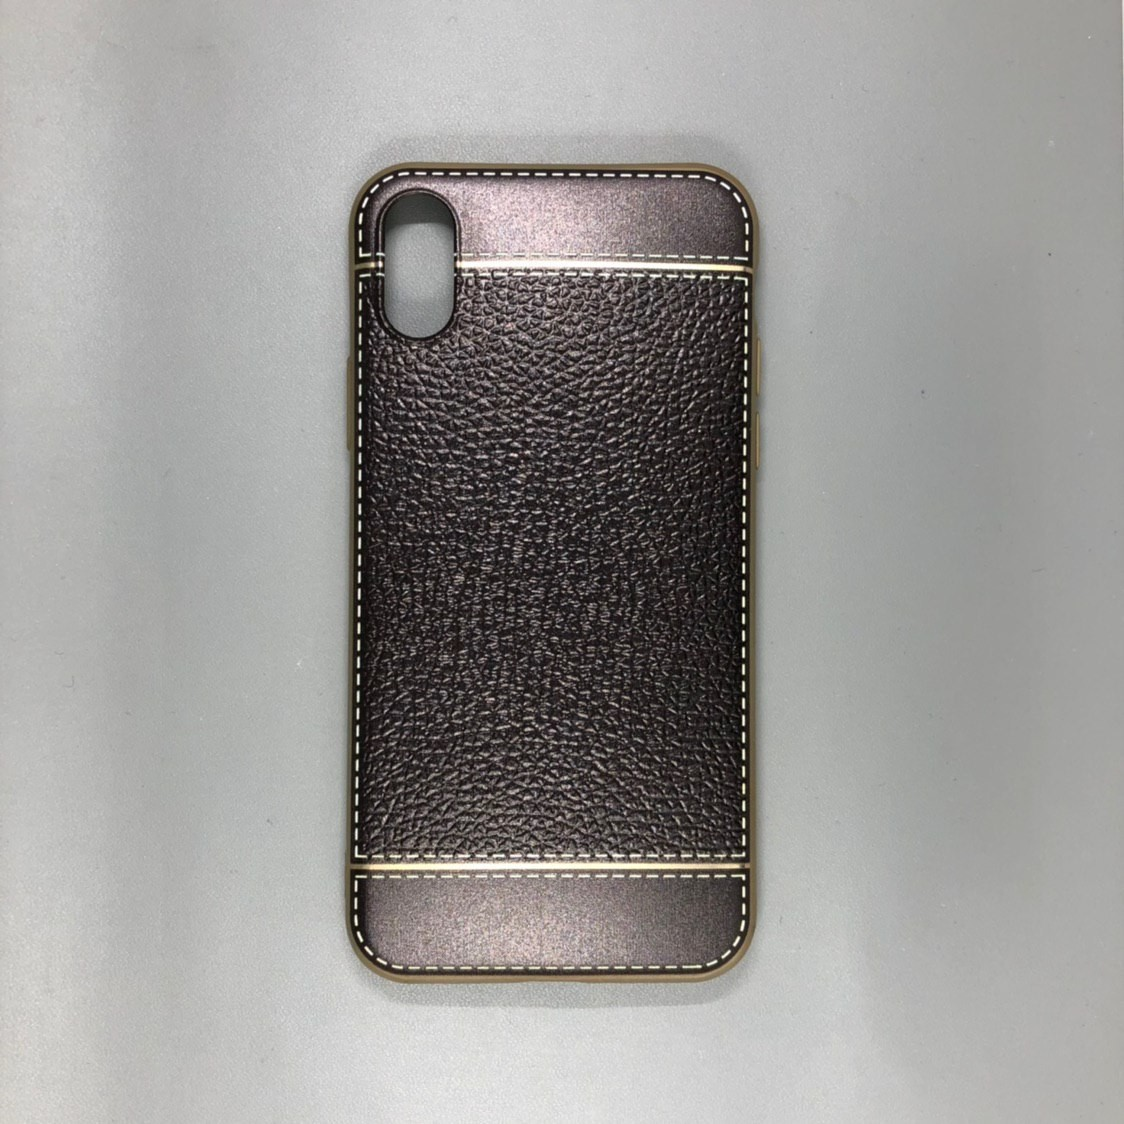 iPhone X Plastic Gold/Gray